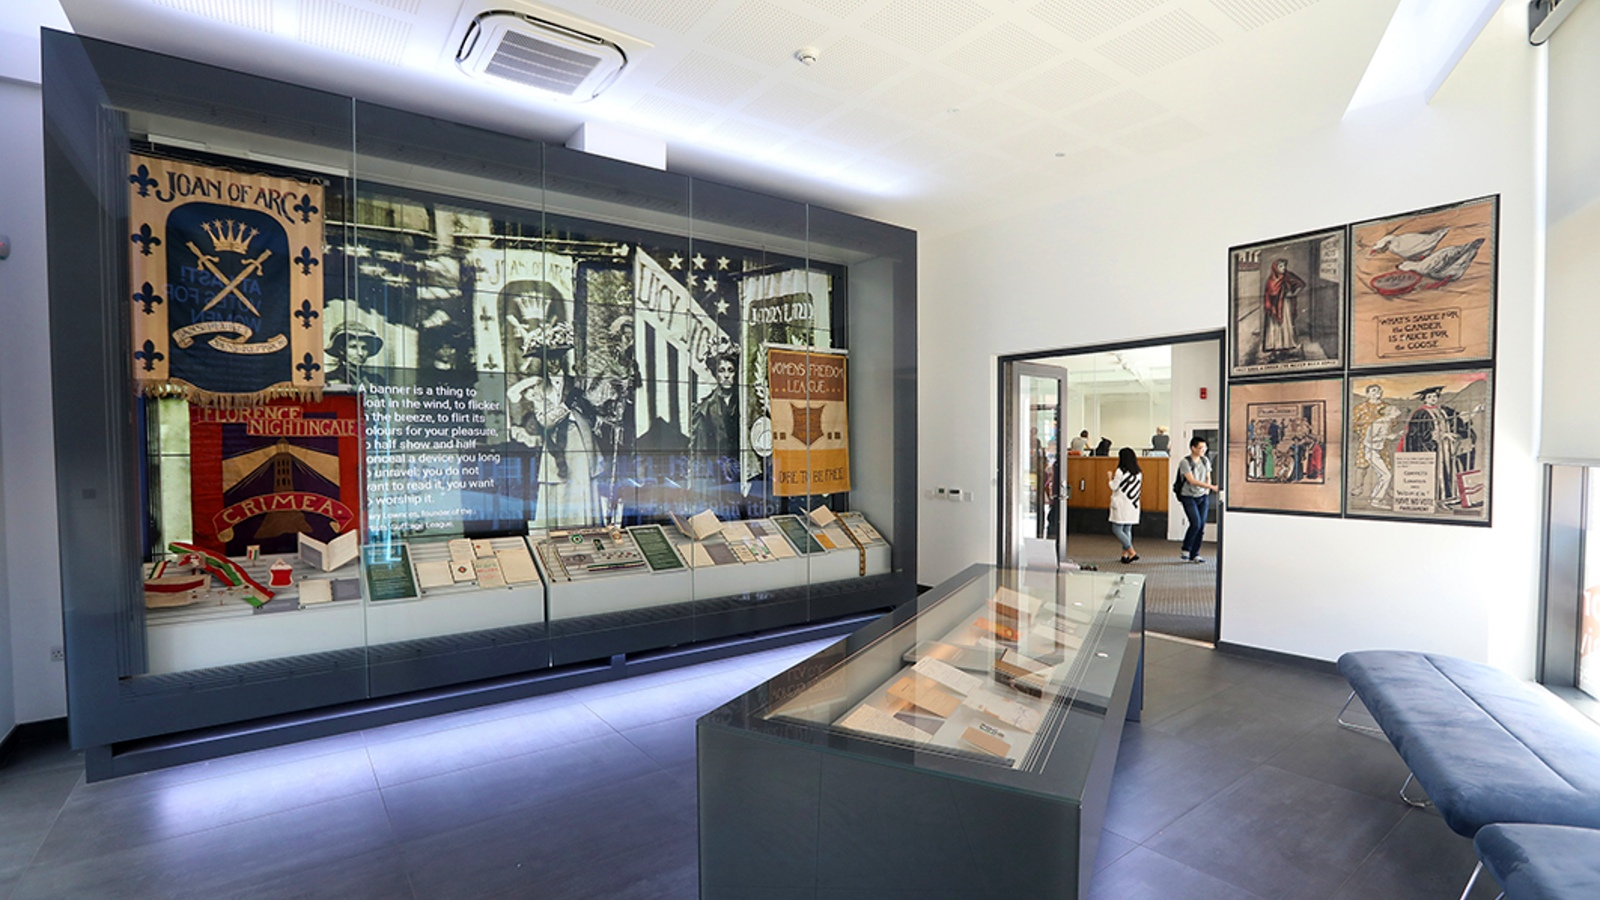 A view of the Exhibition Gallery looking primarily at the large digital screen where images from the exhibition along with various objects are on display. It also includes the main display case with objects in and a view out of the room's door into LSE Library.